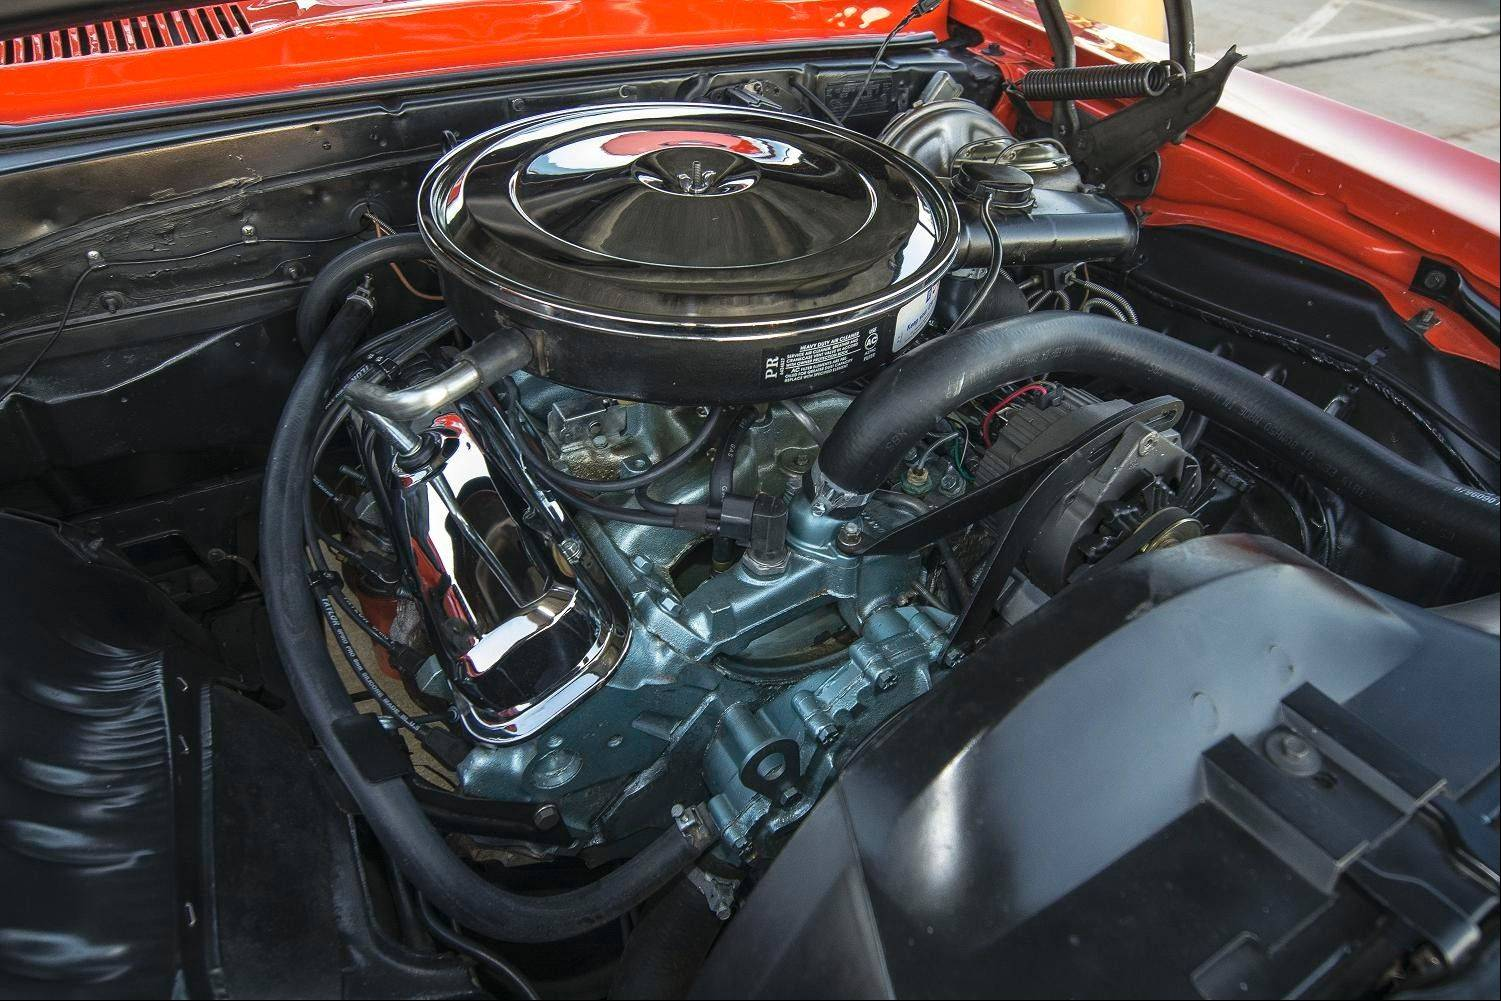 The Firebird's 400-cubic-inch V-8 engine had to be rebuilt in 2008.